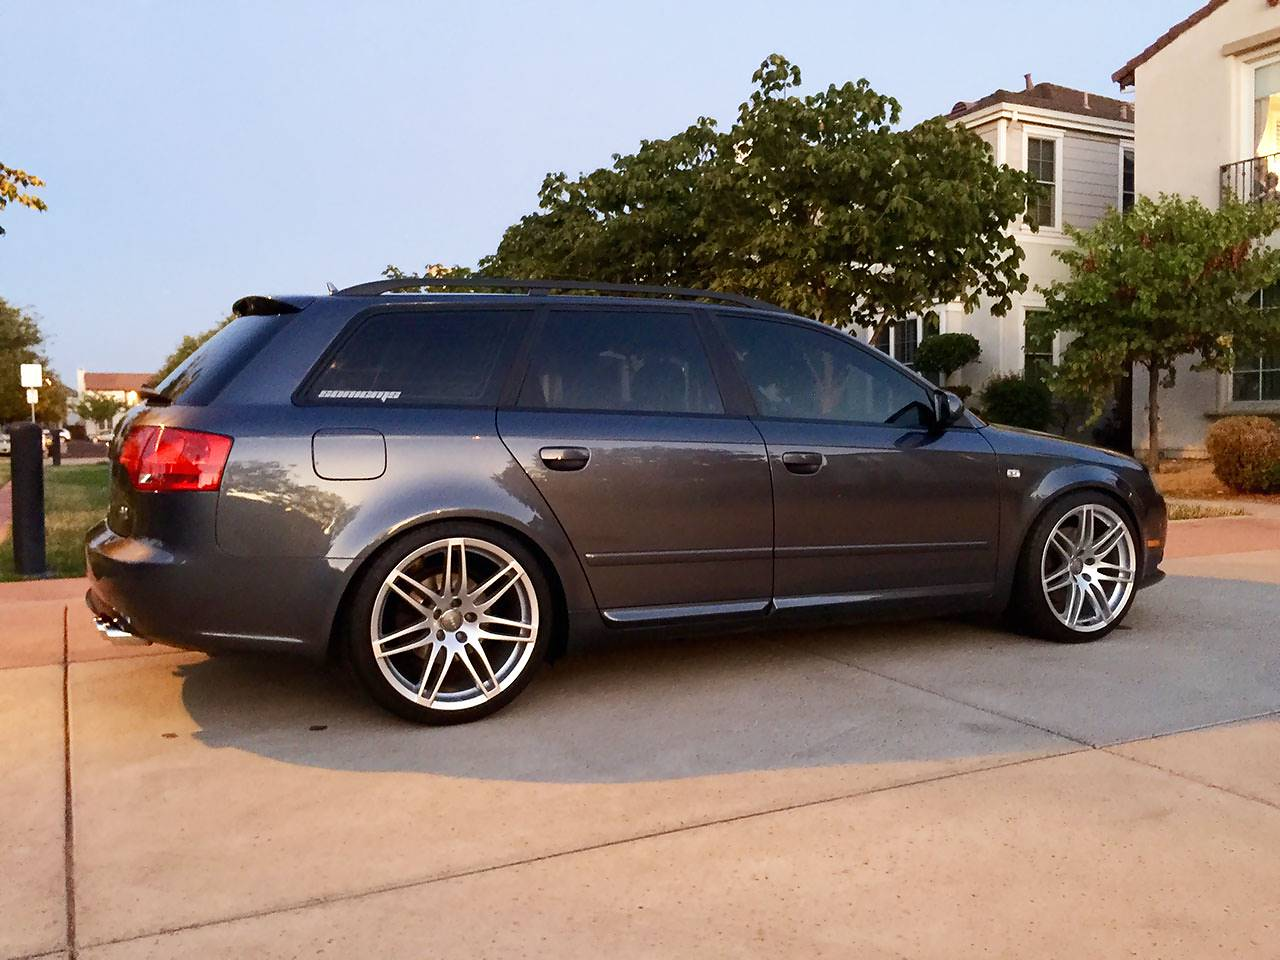 Audi A4 B7 3.2 FSI Quattro with Supersprint sport exhaust 763522 + 763513 + 765407 + 765437 and S4 diffuser